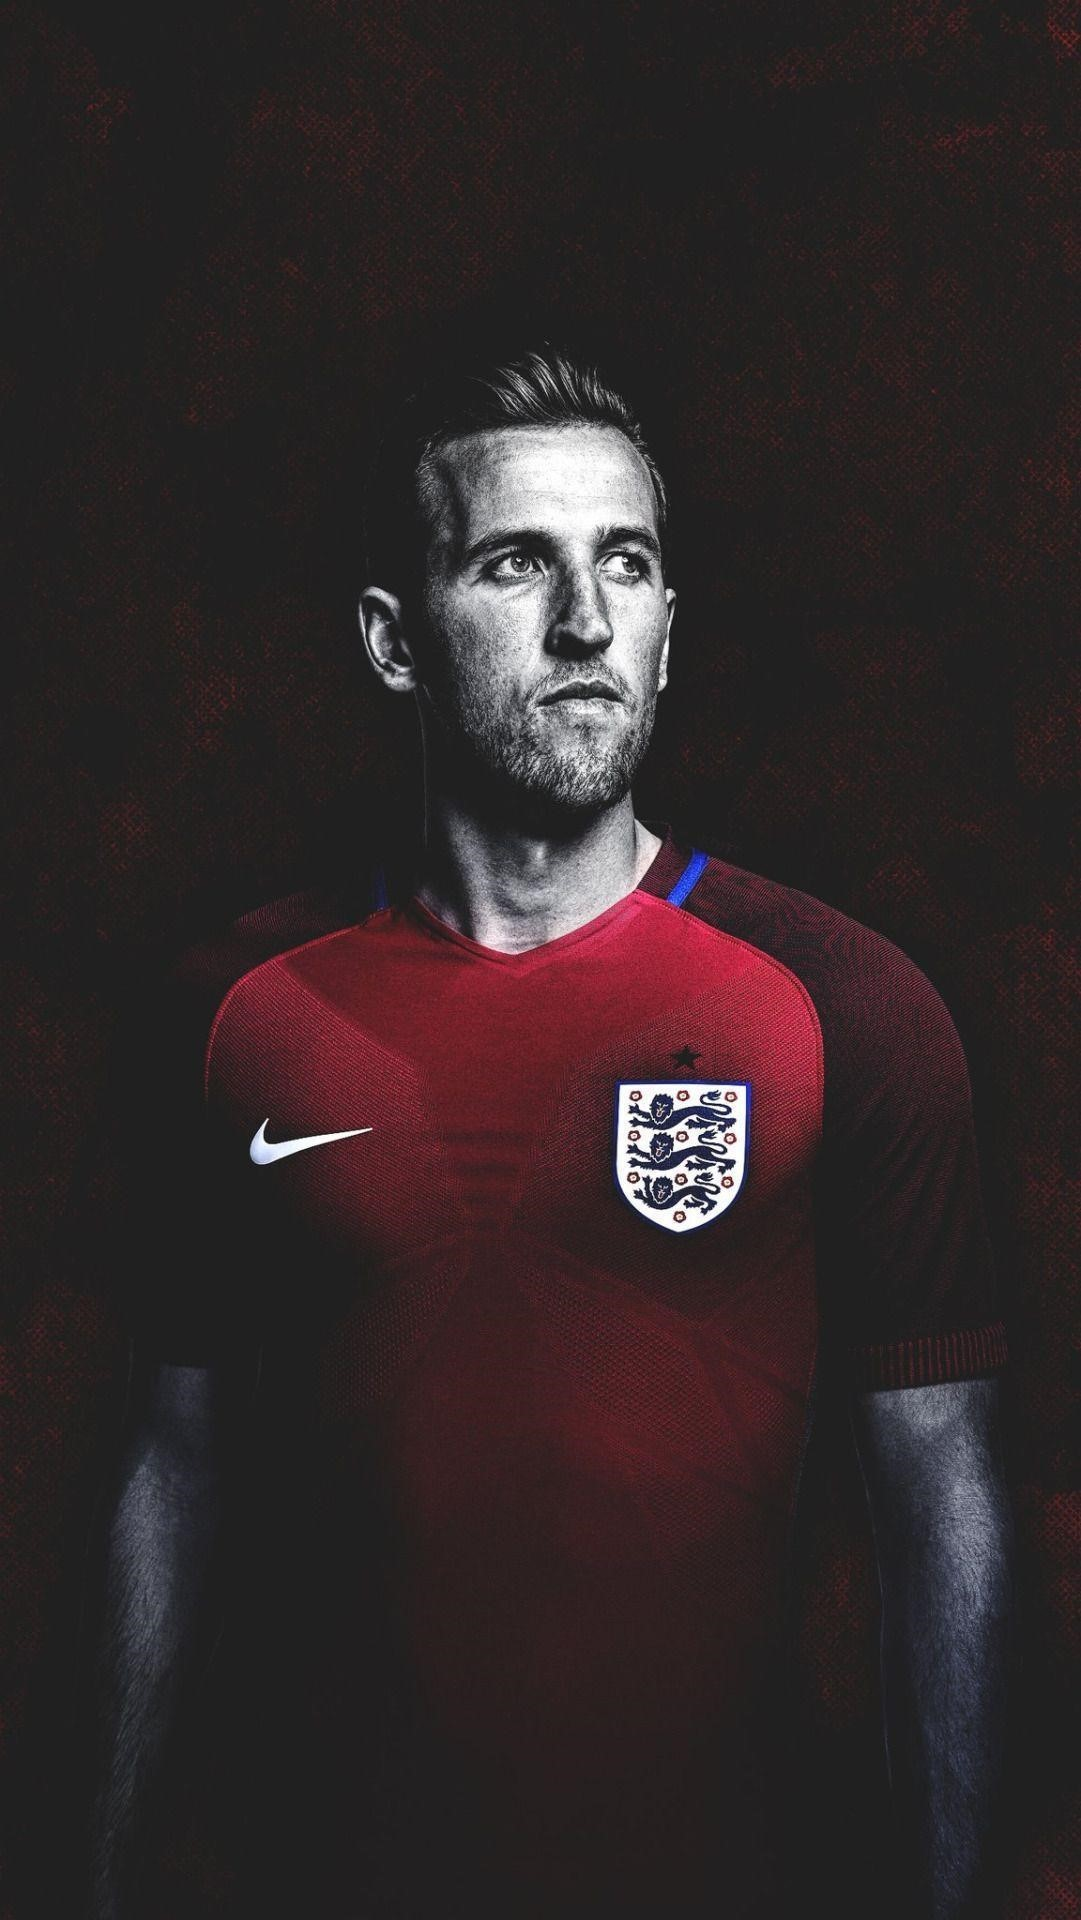 Kane Android Wallpaper